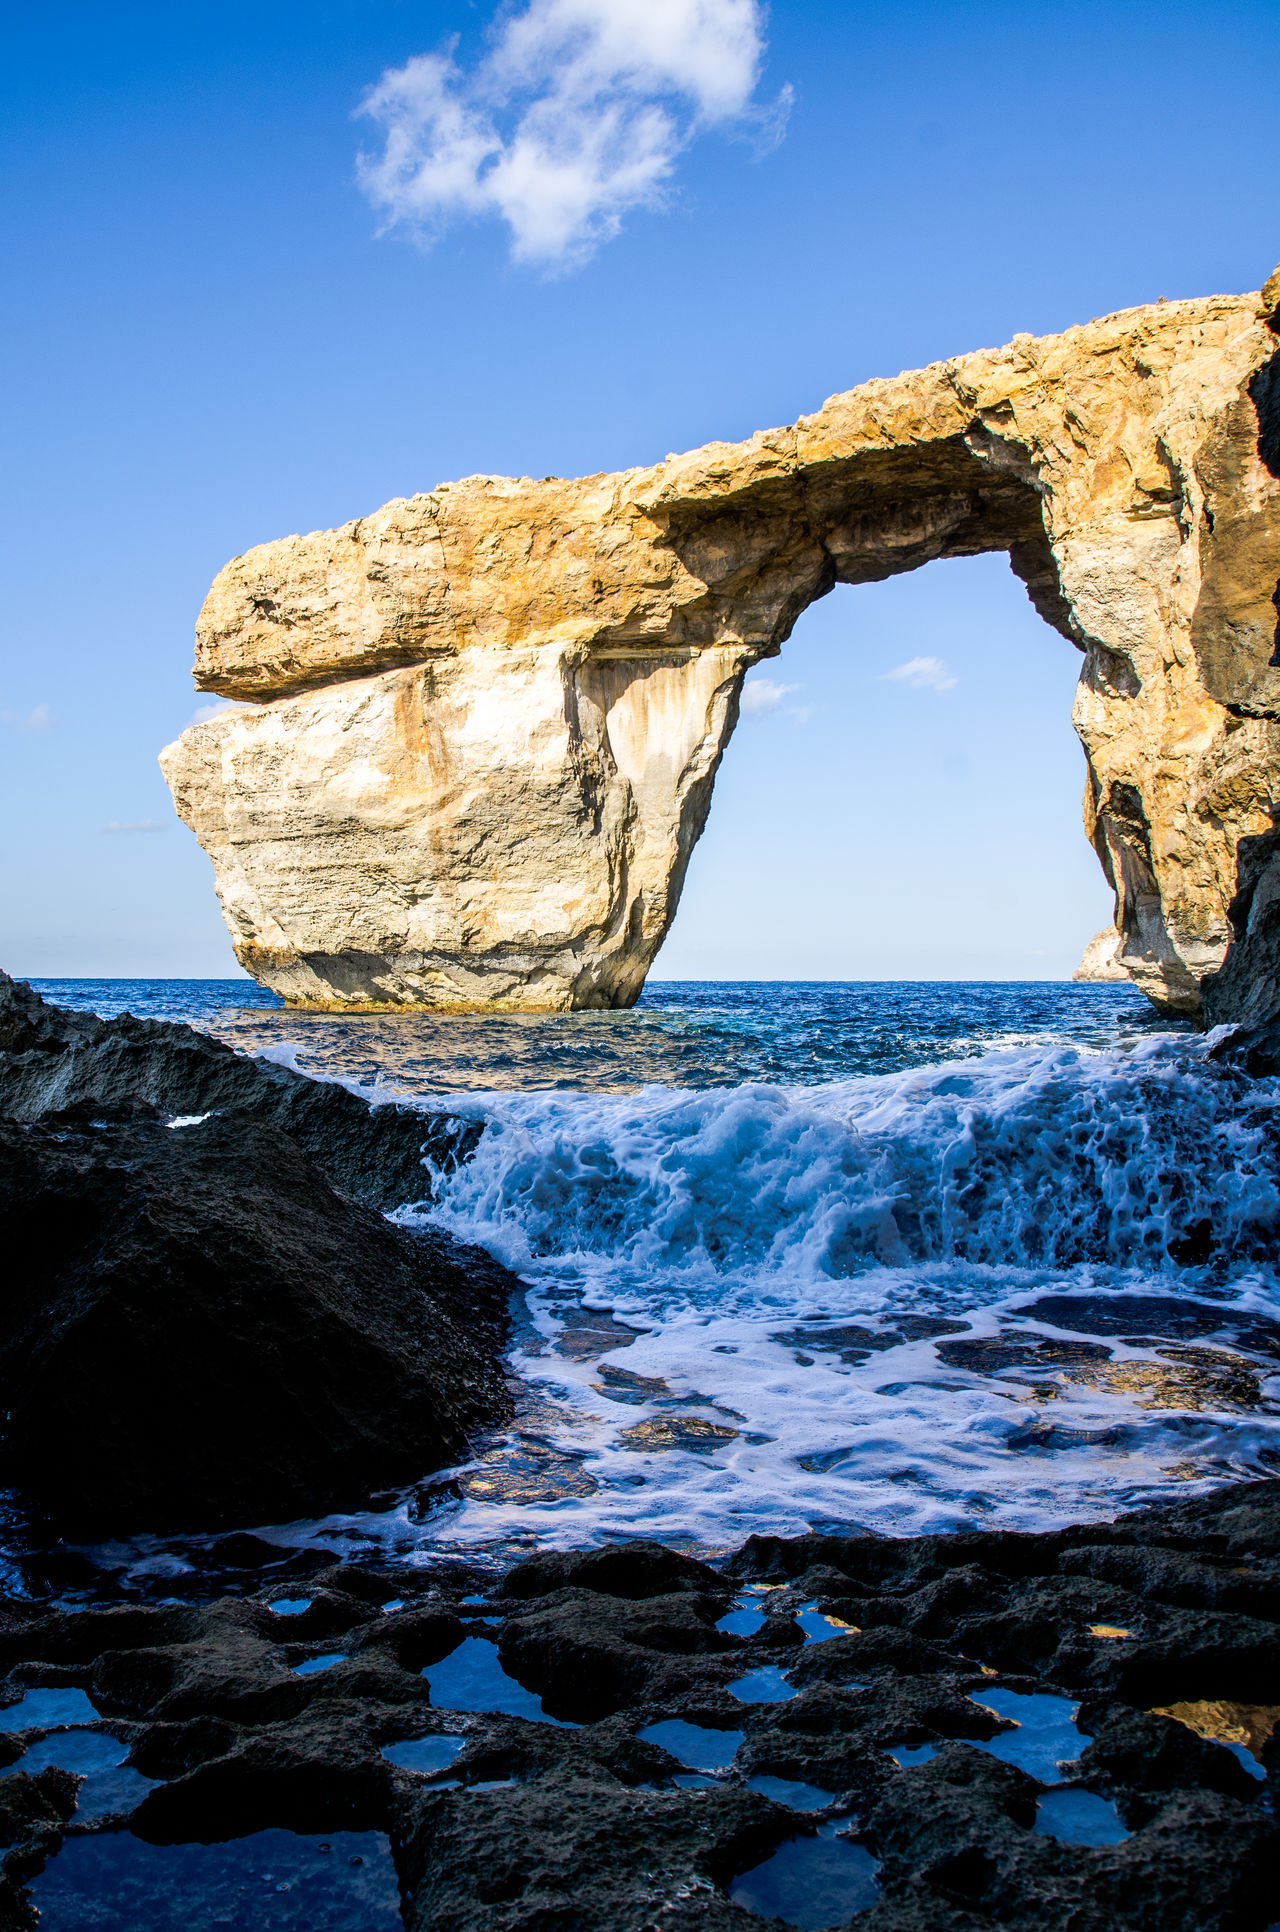 Astrology Sign Beauty In Nature Blue Day Nature No People Outdoors Representing Rock - Object Scenics Sea Sky Travel Travel Destinations Water